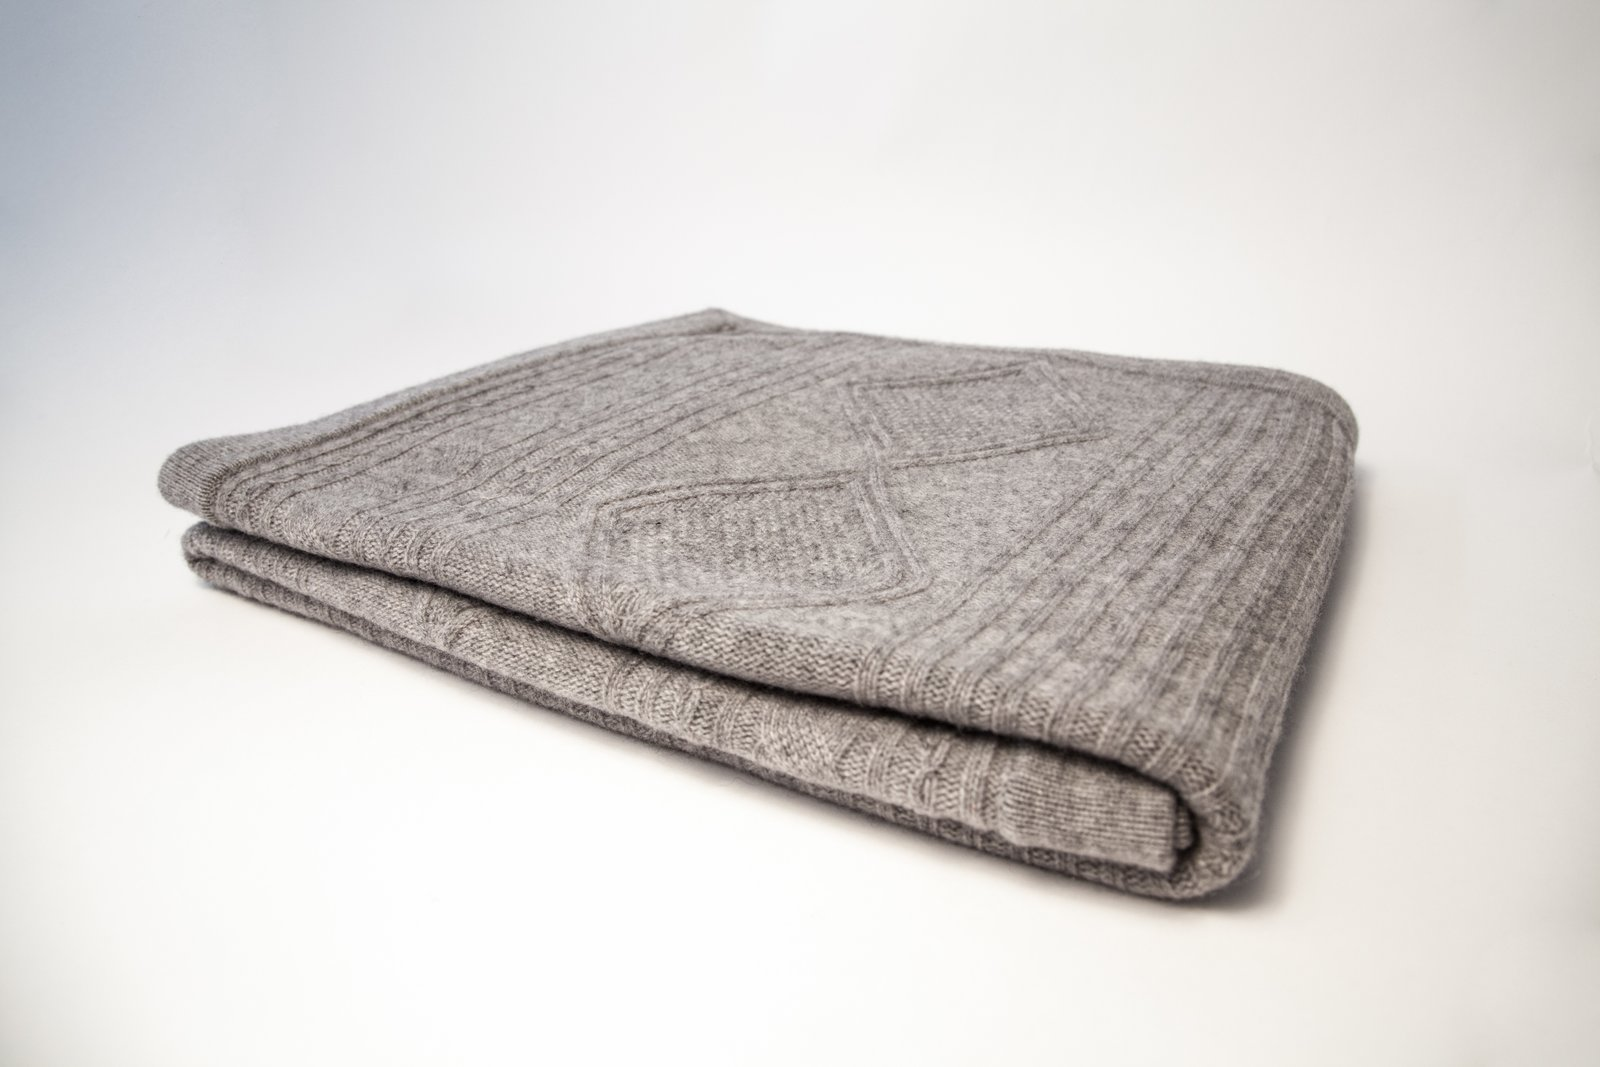 Photo 1 of 2 in Cuddling Up with Qi Home's Cashmere